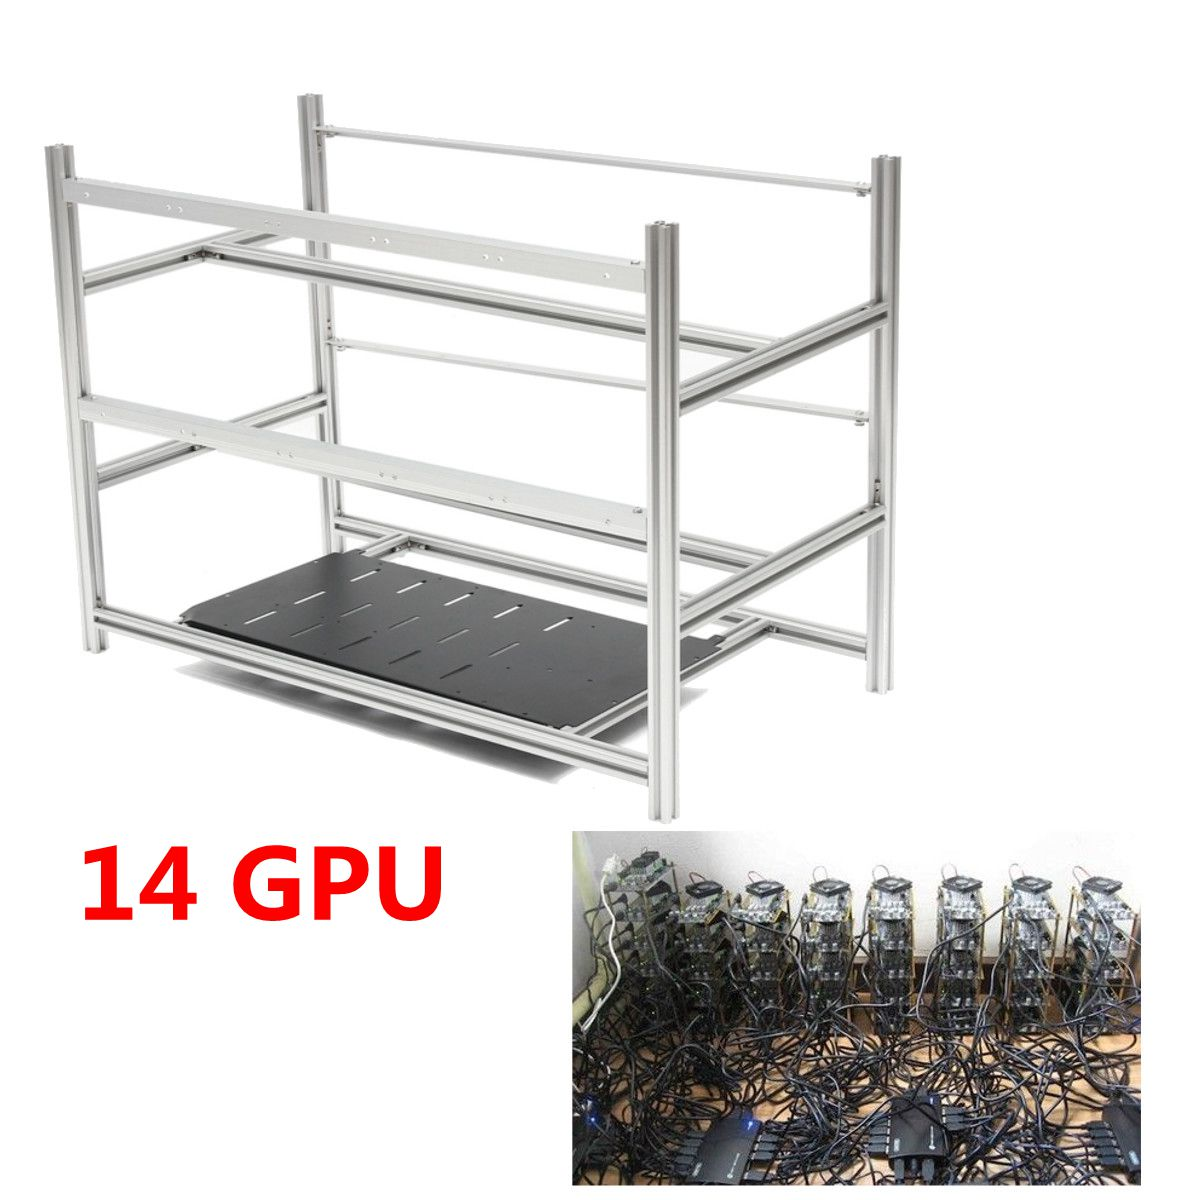 Open Air Mining Rig Stackable Frame Case 10 LED Fans For 14 GPU ETH BTC Ethereum Computer Mining Case Server Chassis Without Fan open air mining rig stackable computer mining frame case 10 led fans for 14 gpu eth btc ethereum frame case server chassis